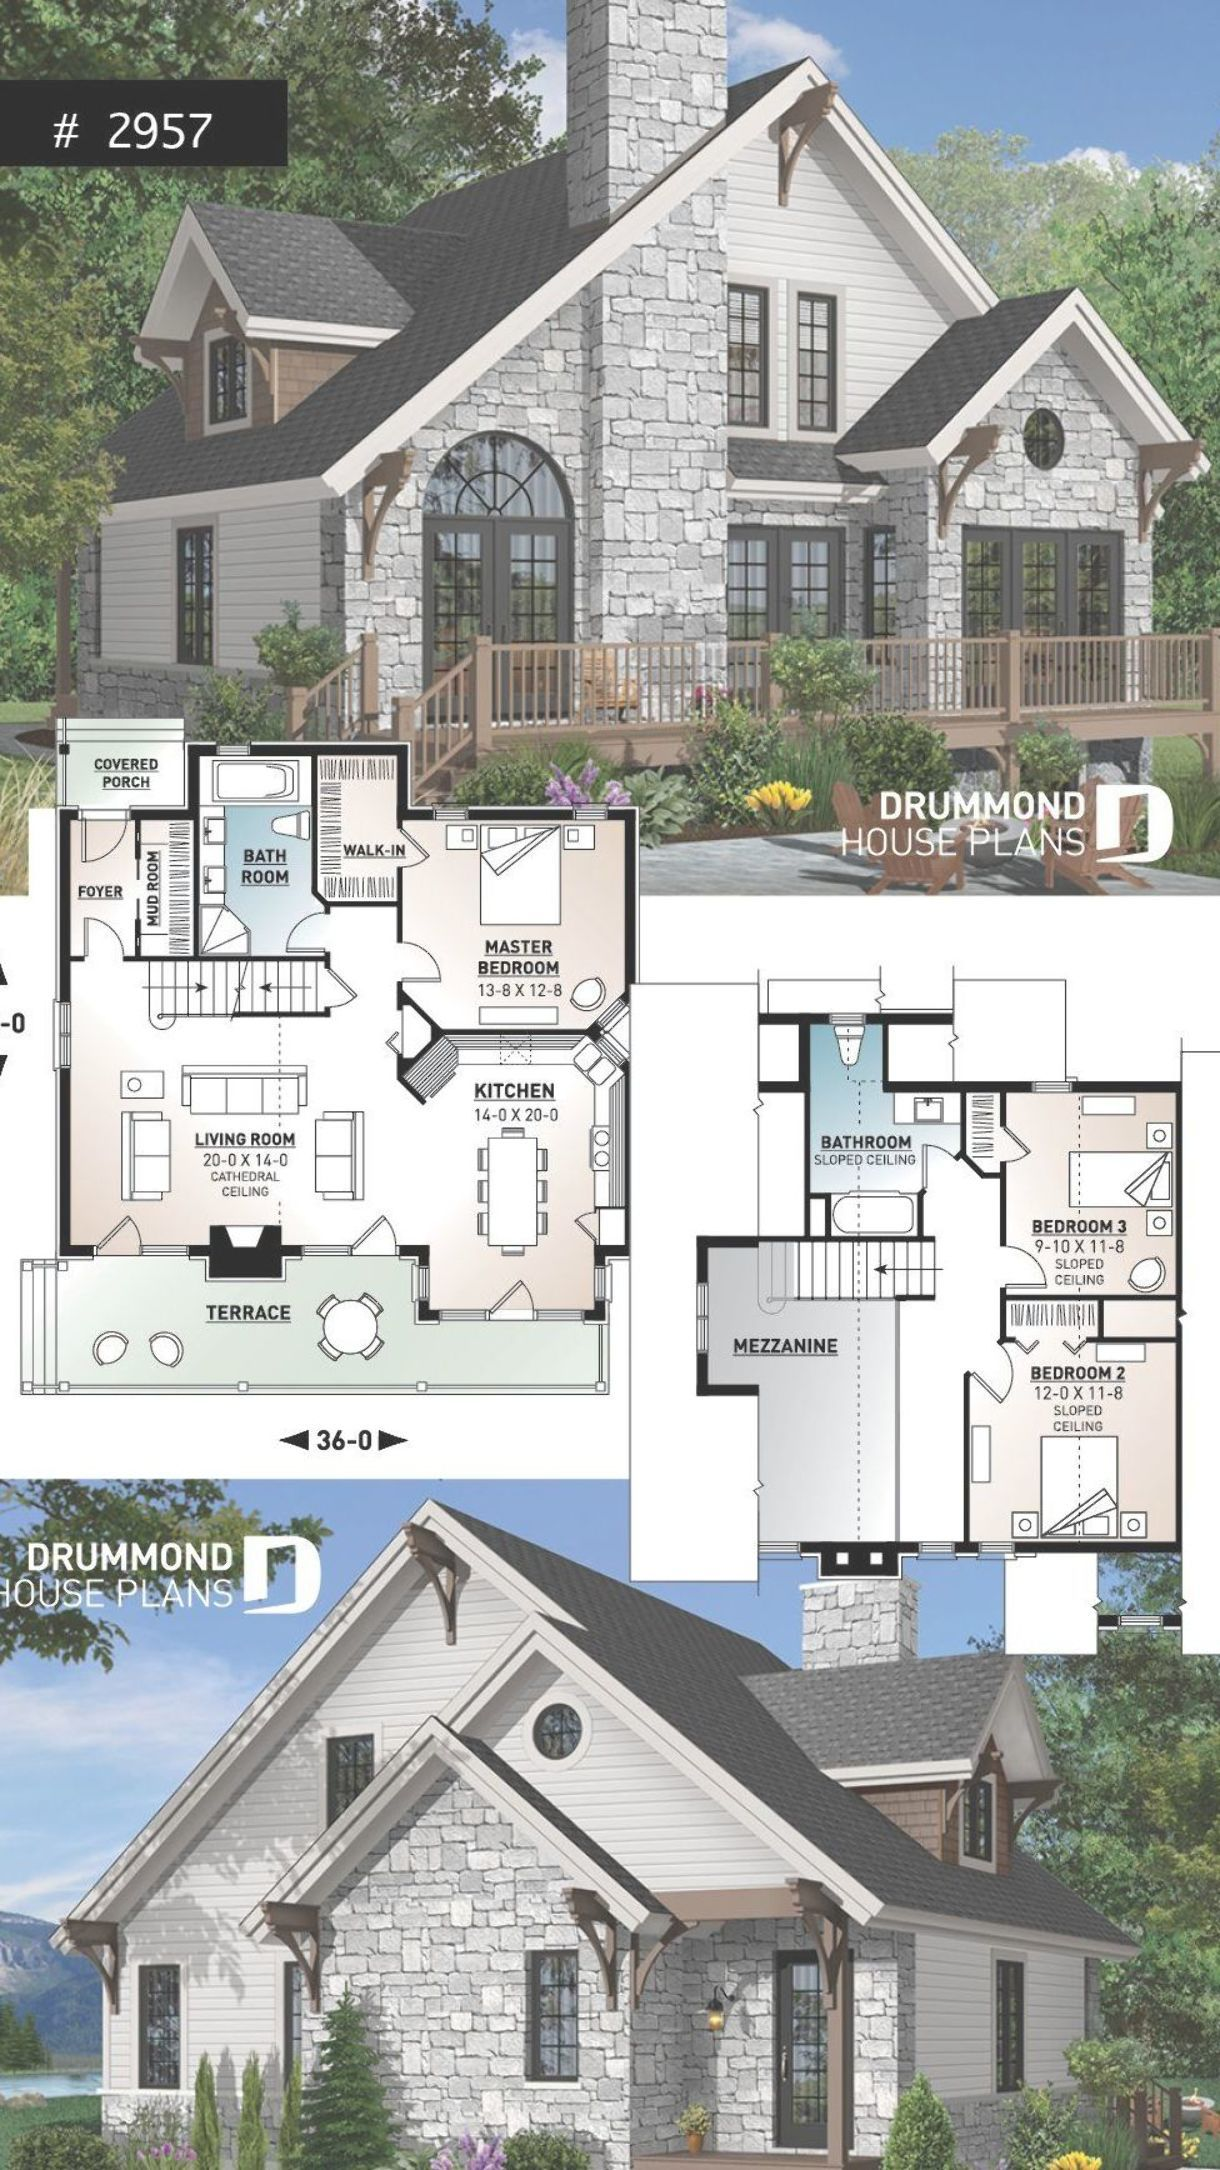 Northwest Style Cottage House Plan 3 Beds Large Terrace Mezzanine Fireplace And Open Floor Plan Sims House Plans Craftsman House Plans Cottage House Plans